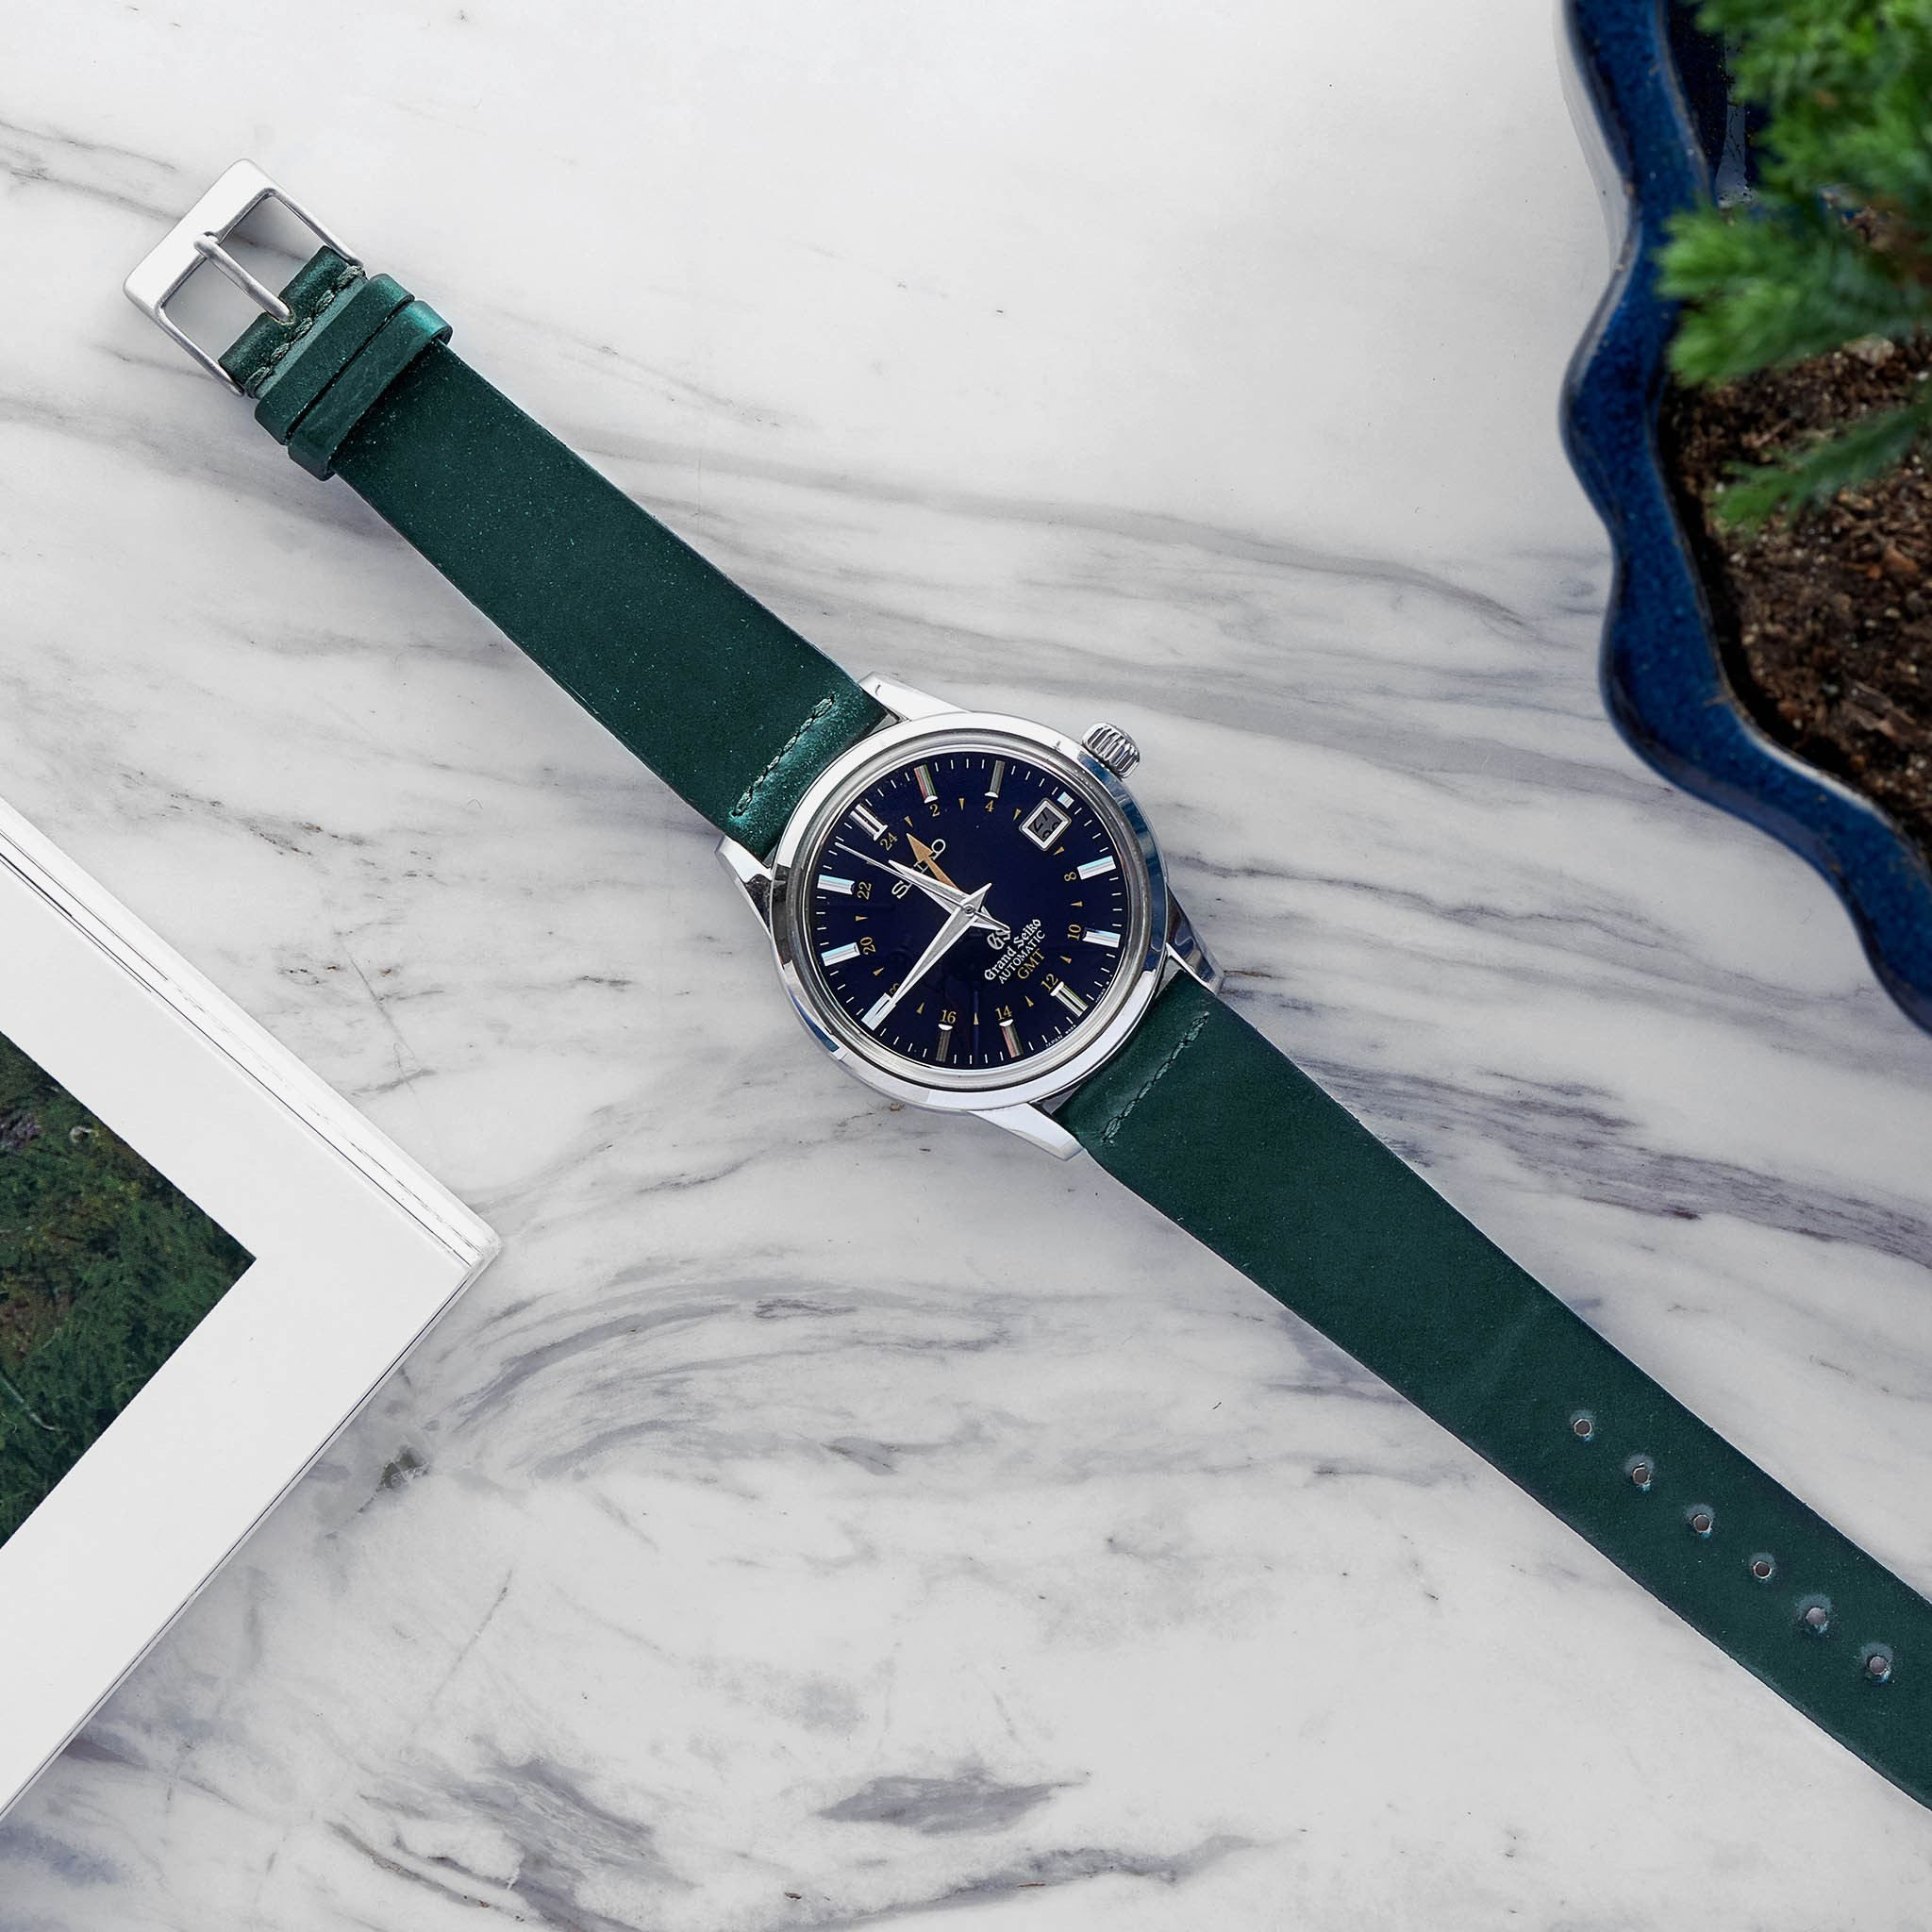 Unlined Green Shell Cordovan Watch Strap